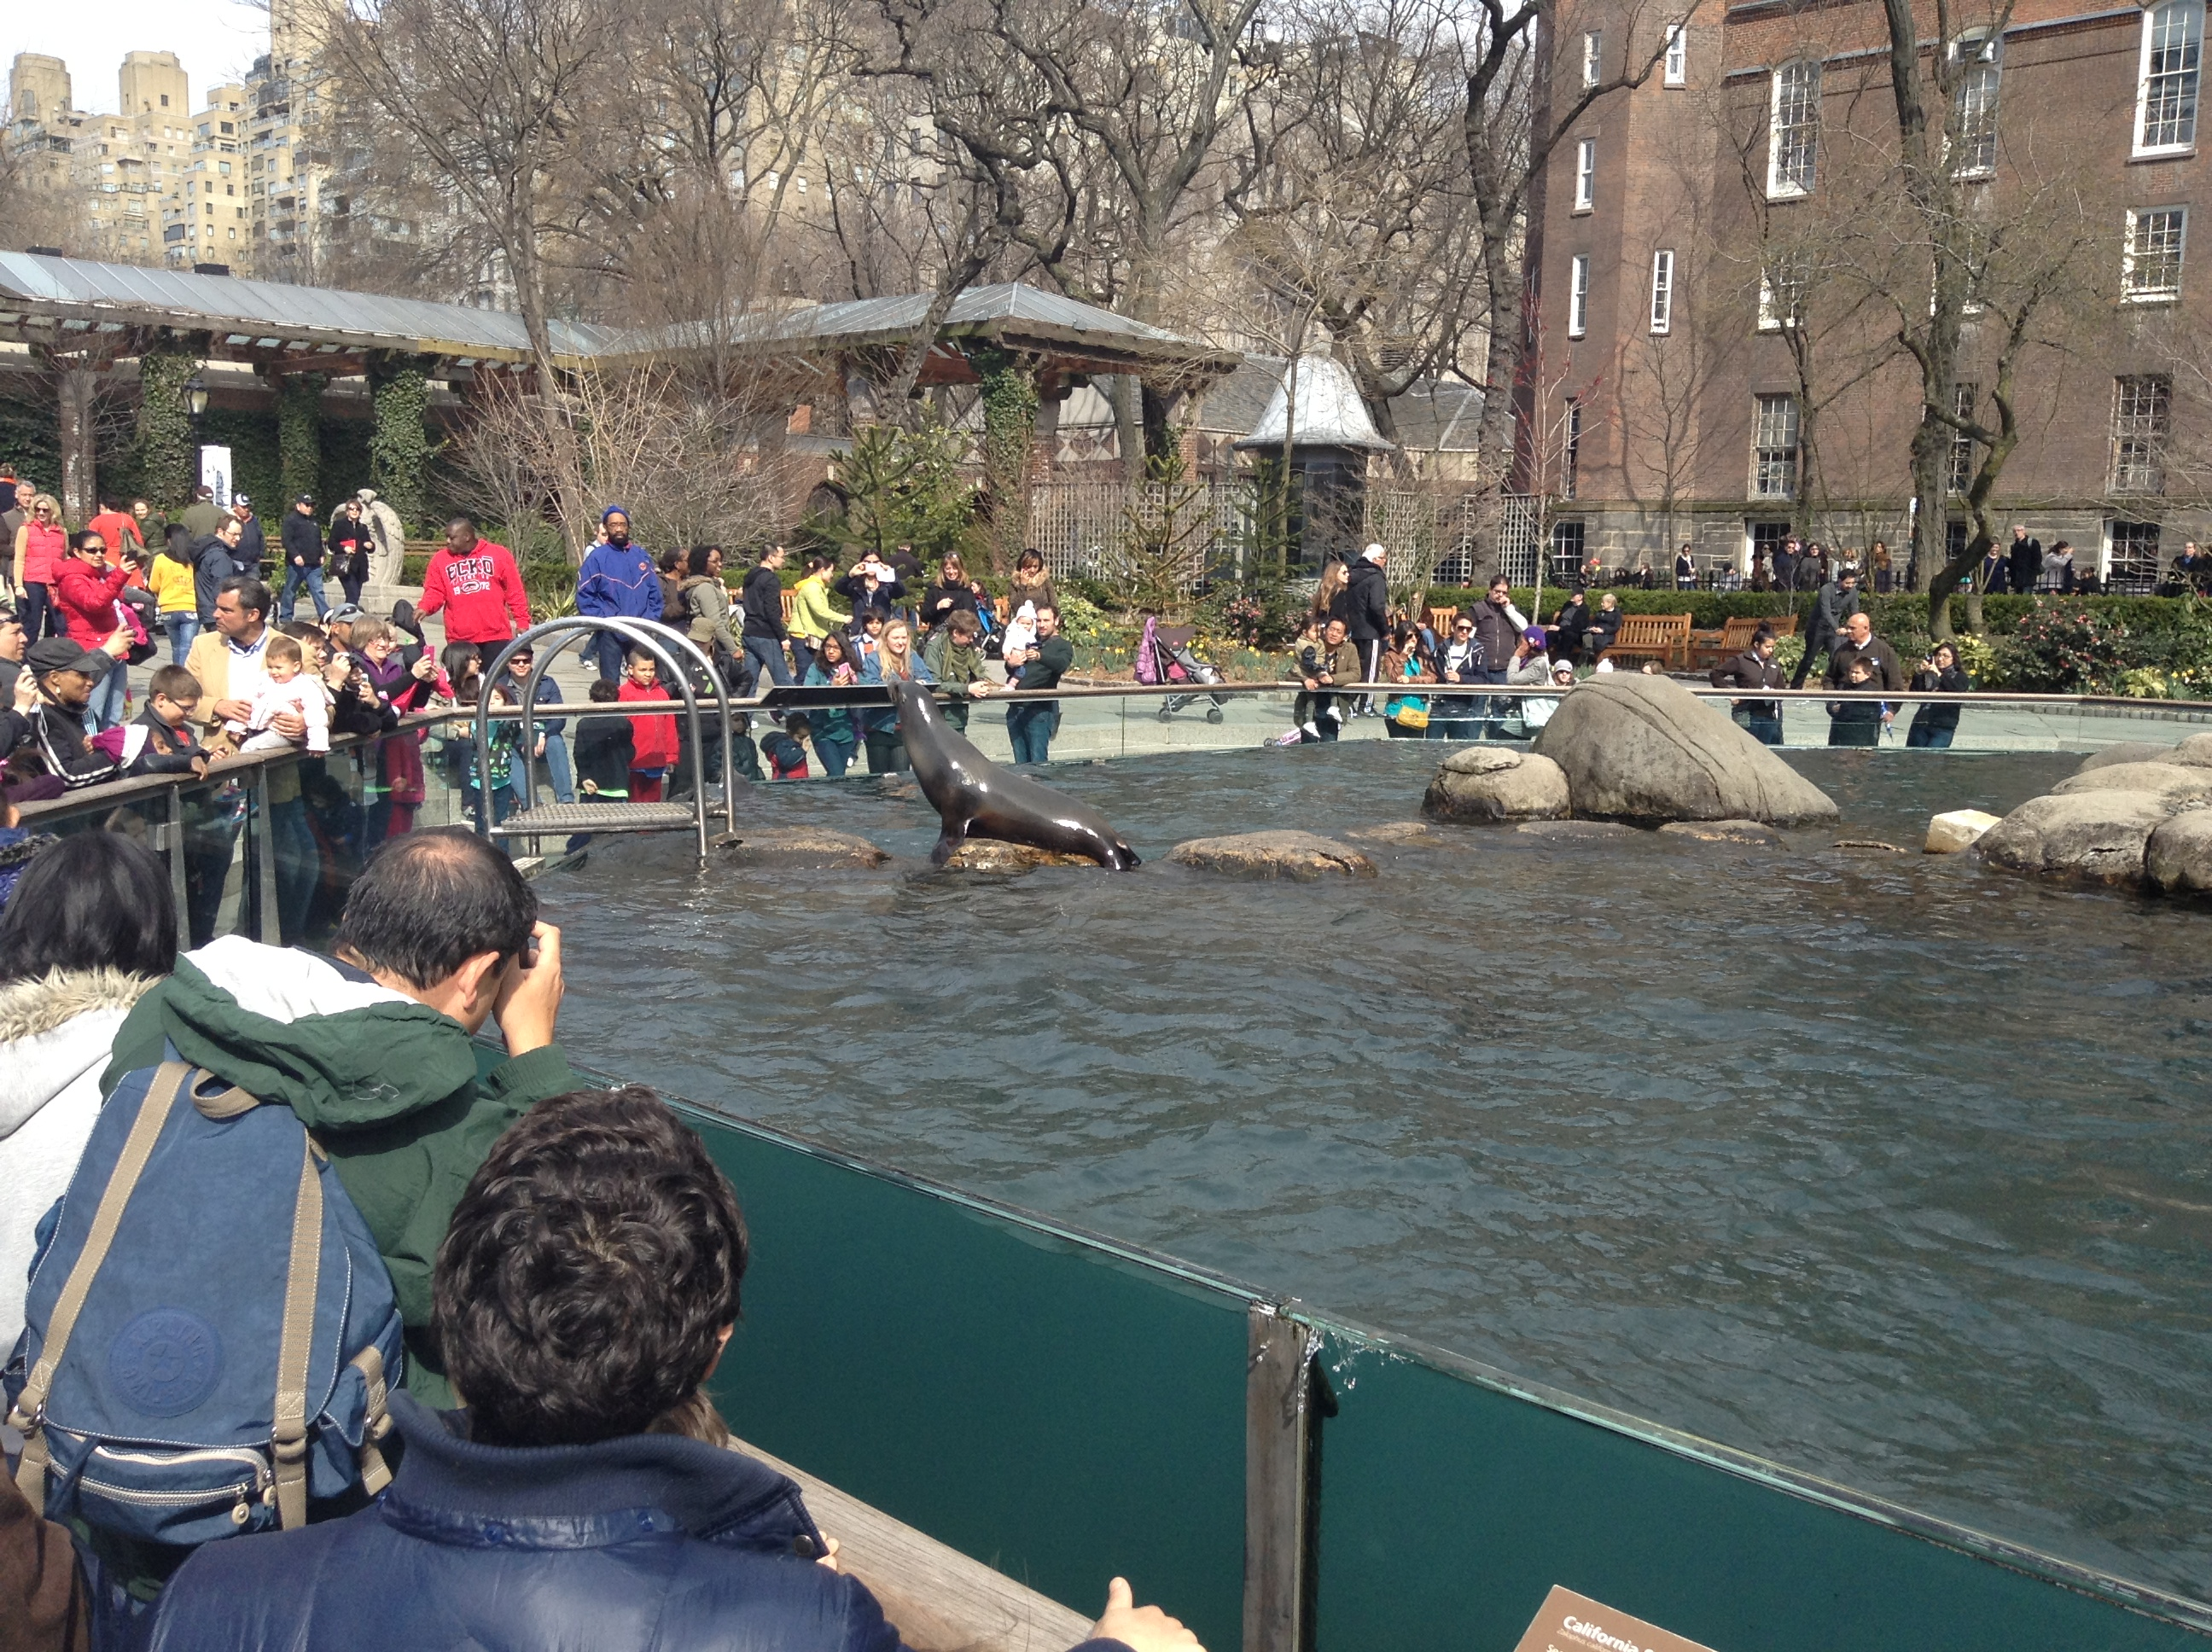 File Sea Lions Entertaining Crowd In Central Park Zoo New York